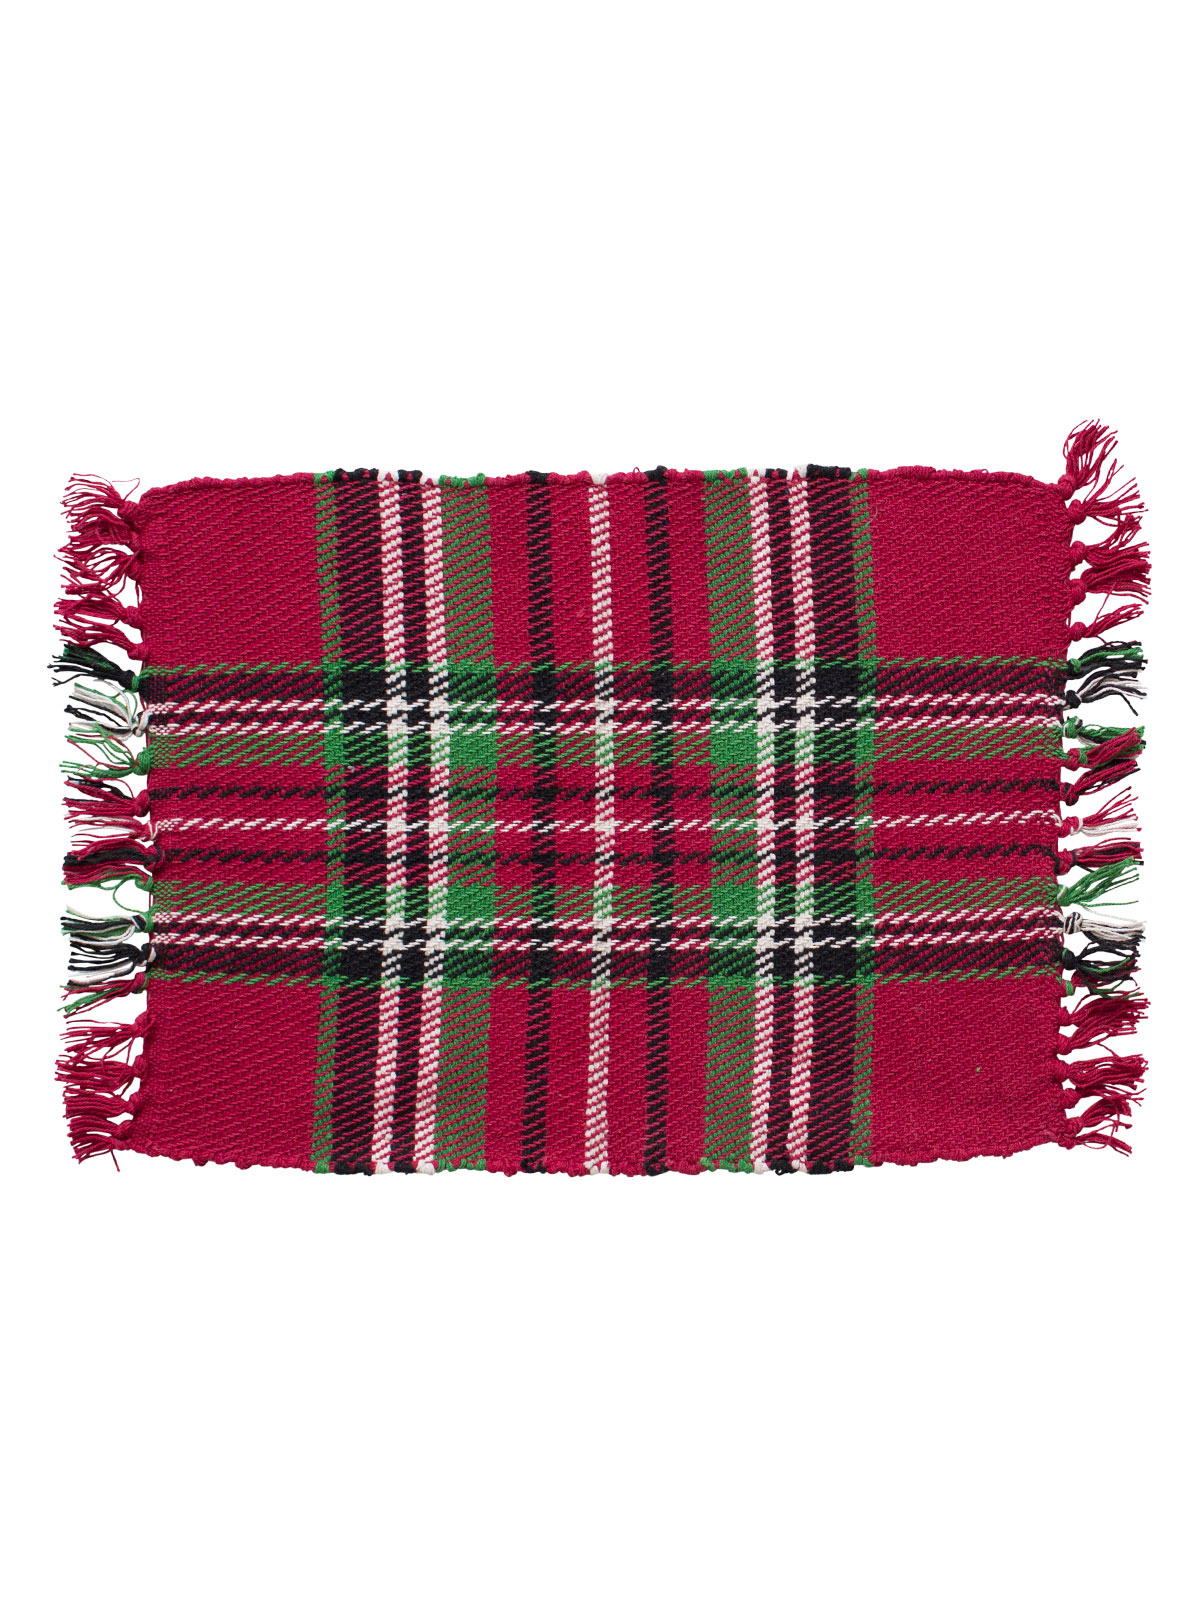 Merry Tartan Plaid Rib Placemat Set of 4